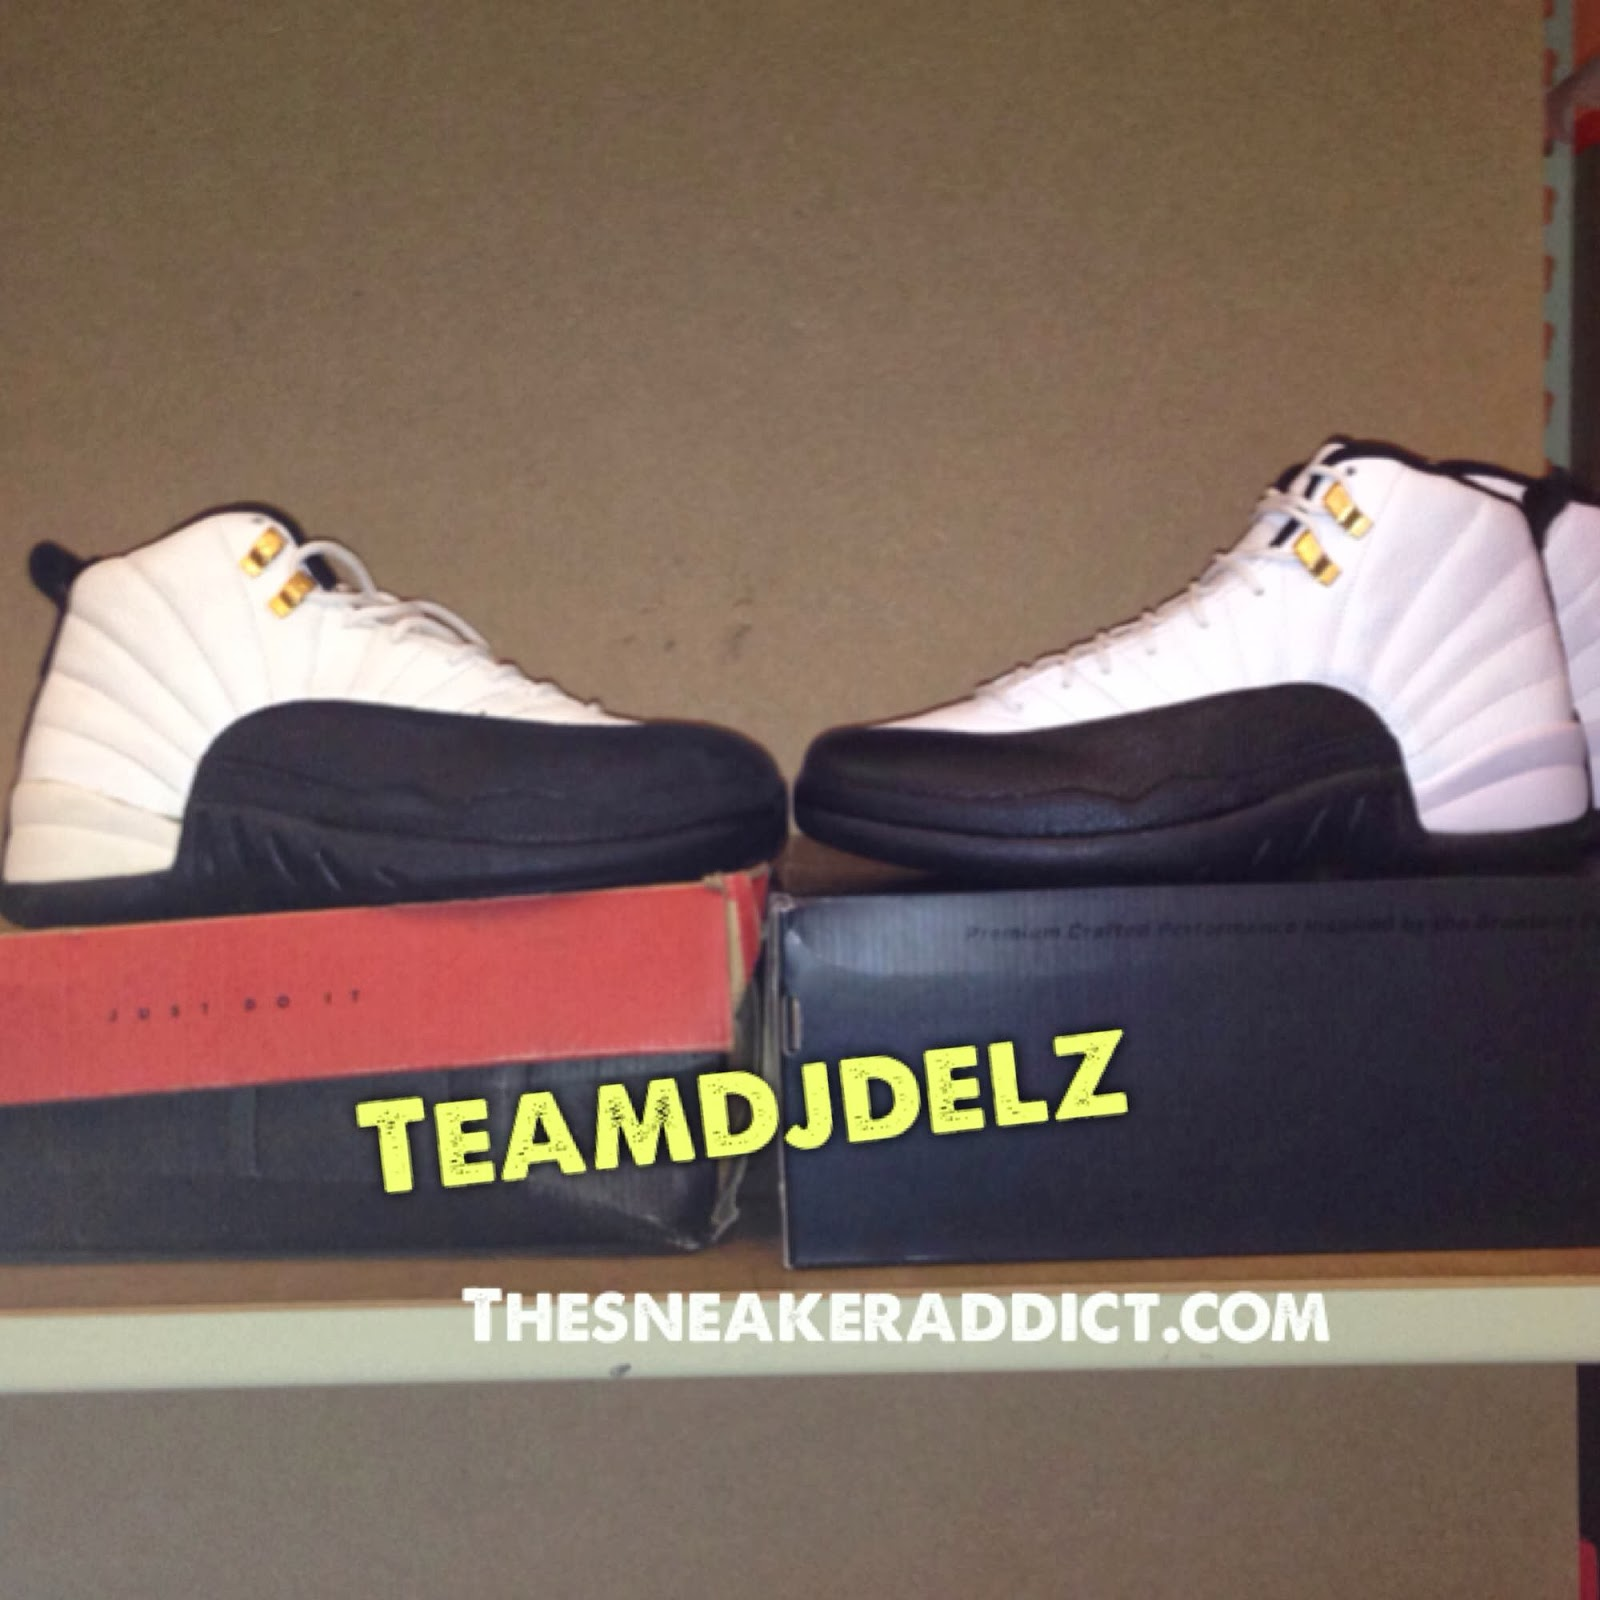 ef21555df1cb6 Here is some photos  Video that Dj Delz took of the 1996 VS 2013 Air Jordan  Taxi 12 XII Sneakers